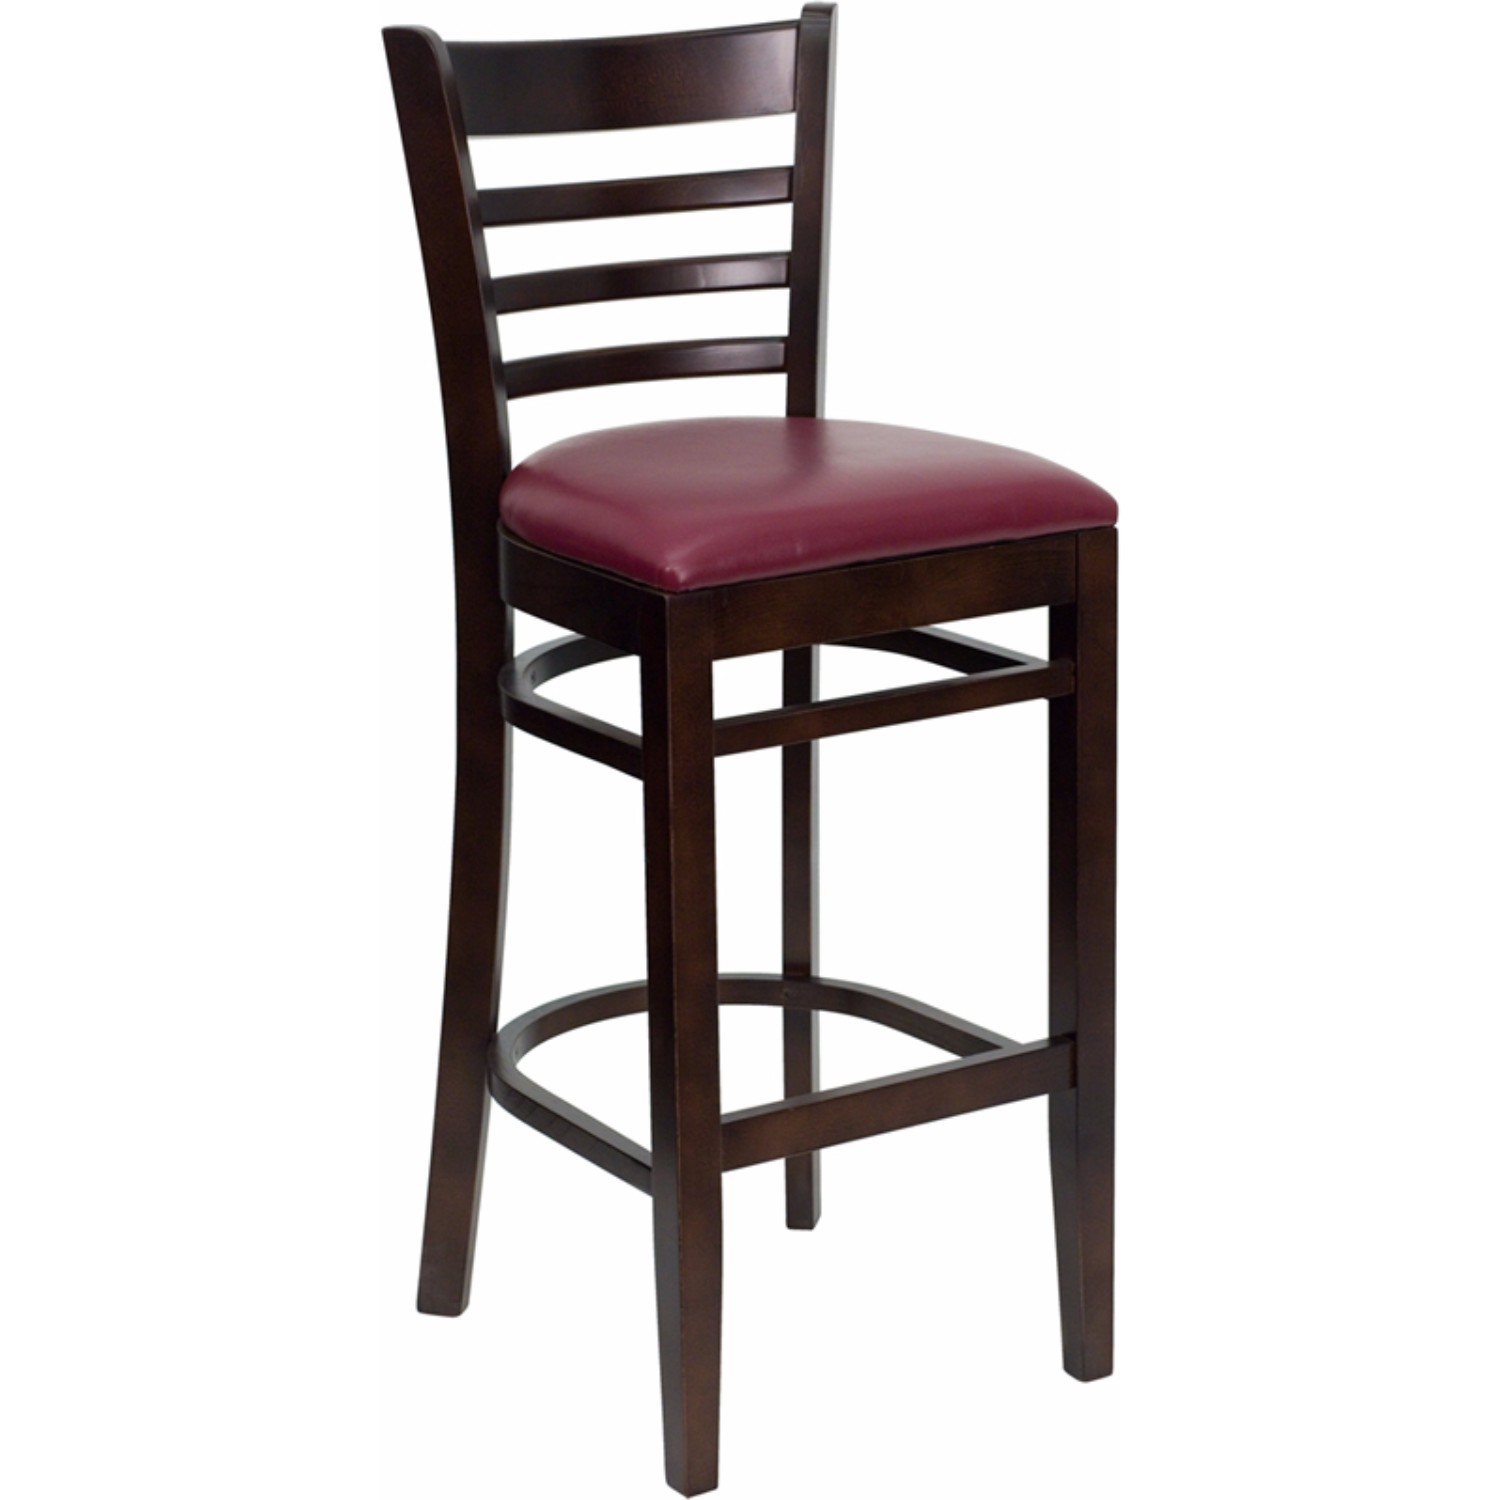 Offex HERCULES Series Walnut Finished Ladder Back Wooden Restaurant Bar Stool Burugundy